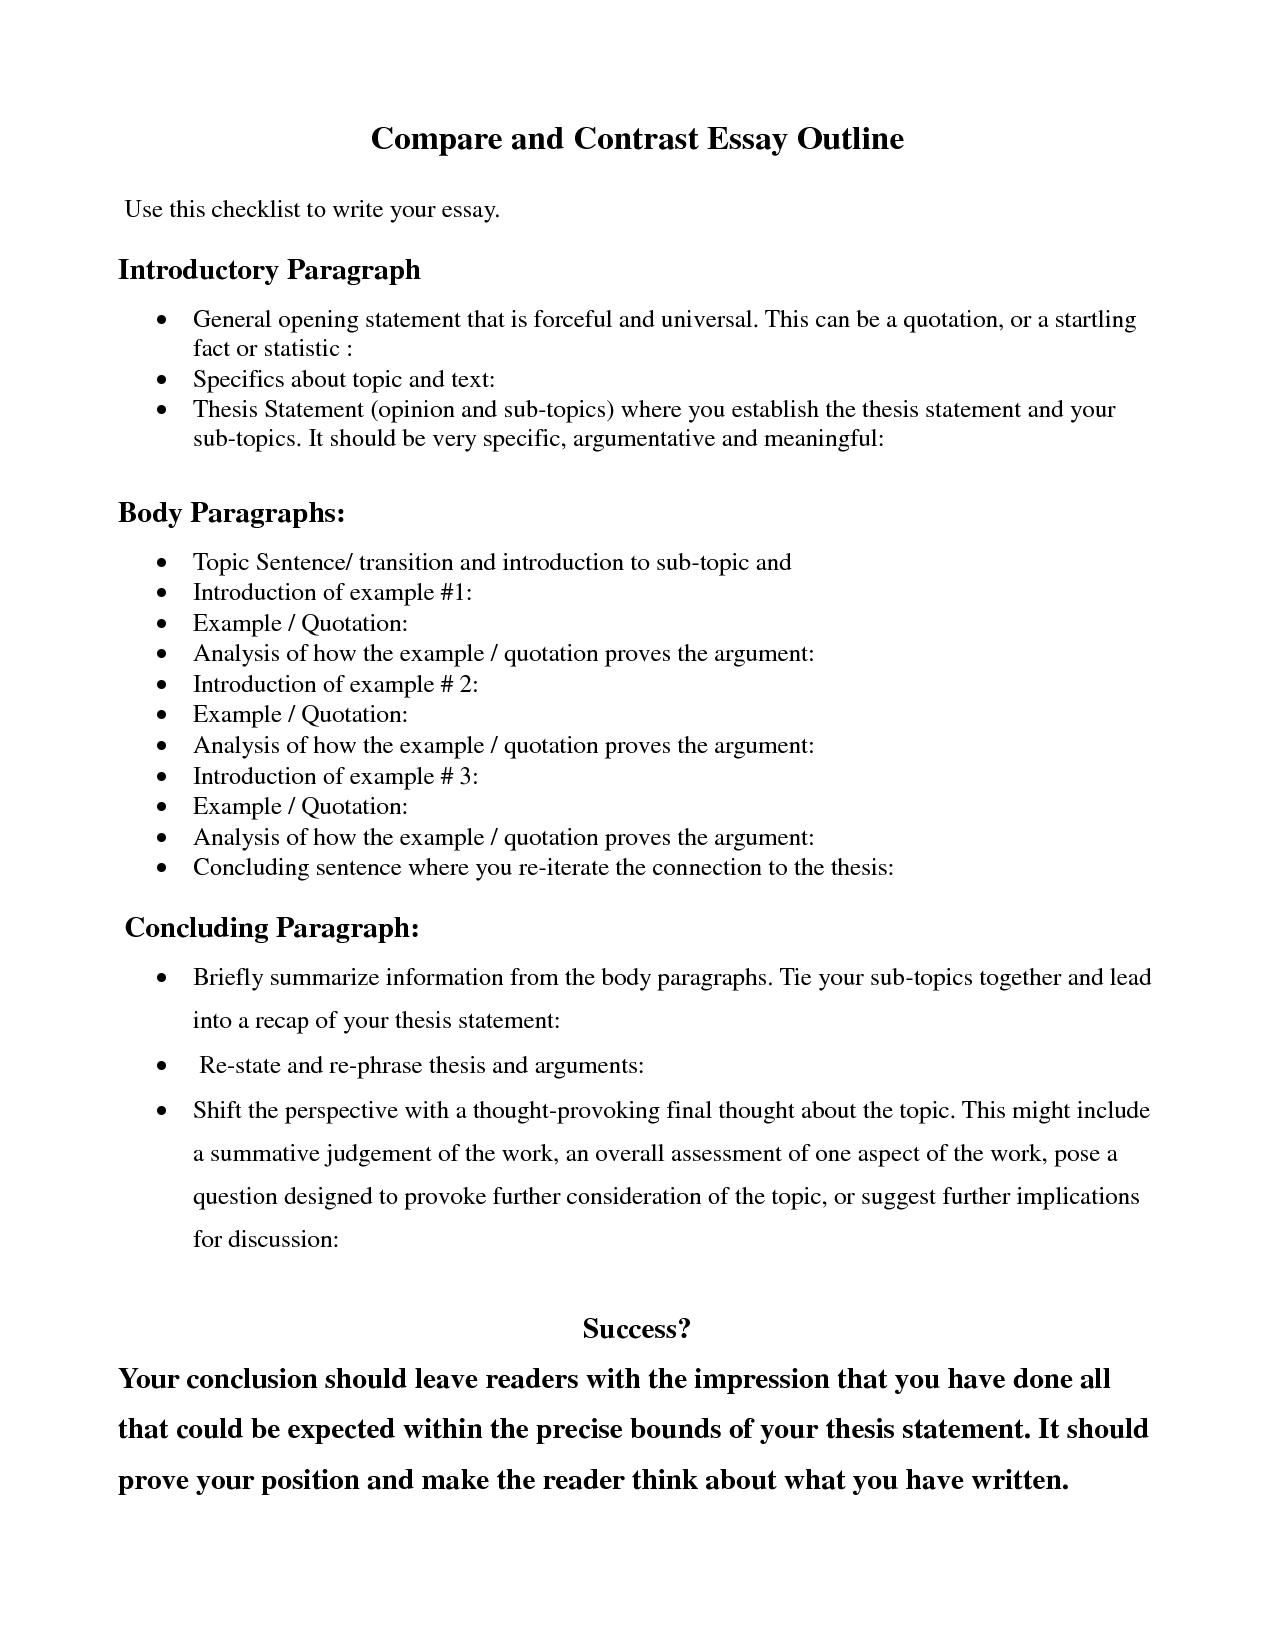 001 Essay Example How To Write Compare And Contrast Outstanding A Outline Comparison Ppt Middle School Full